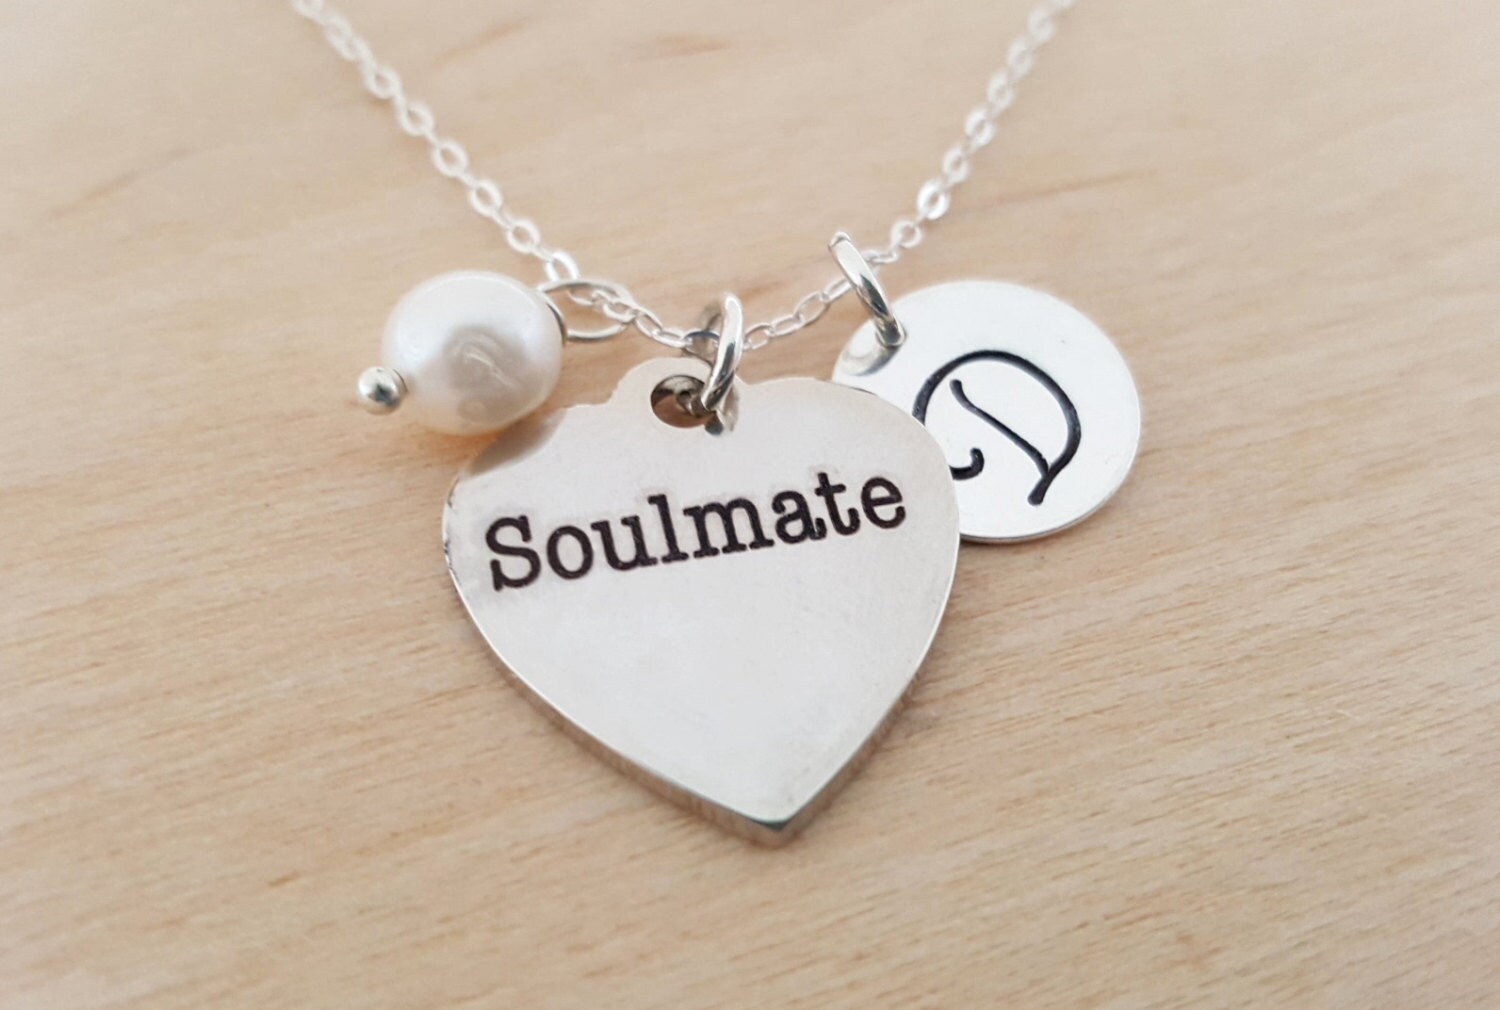 in stainless women necklaces rose from soulmate romantic pendant cubic plated steel item jewelry accessories zirconia gold link woman heart on necklace